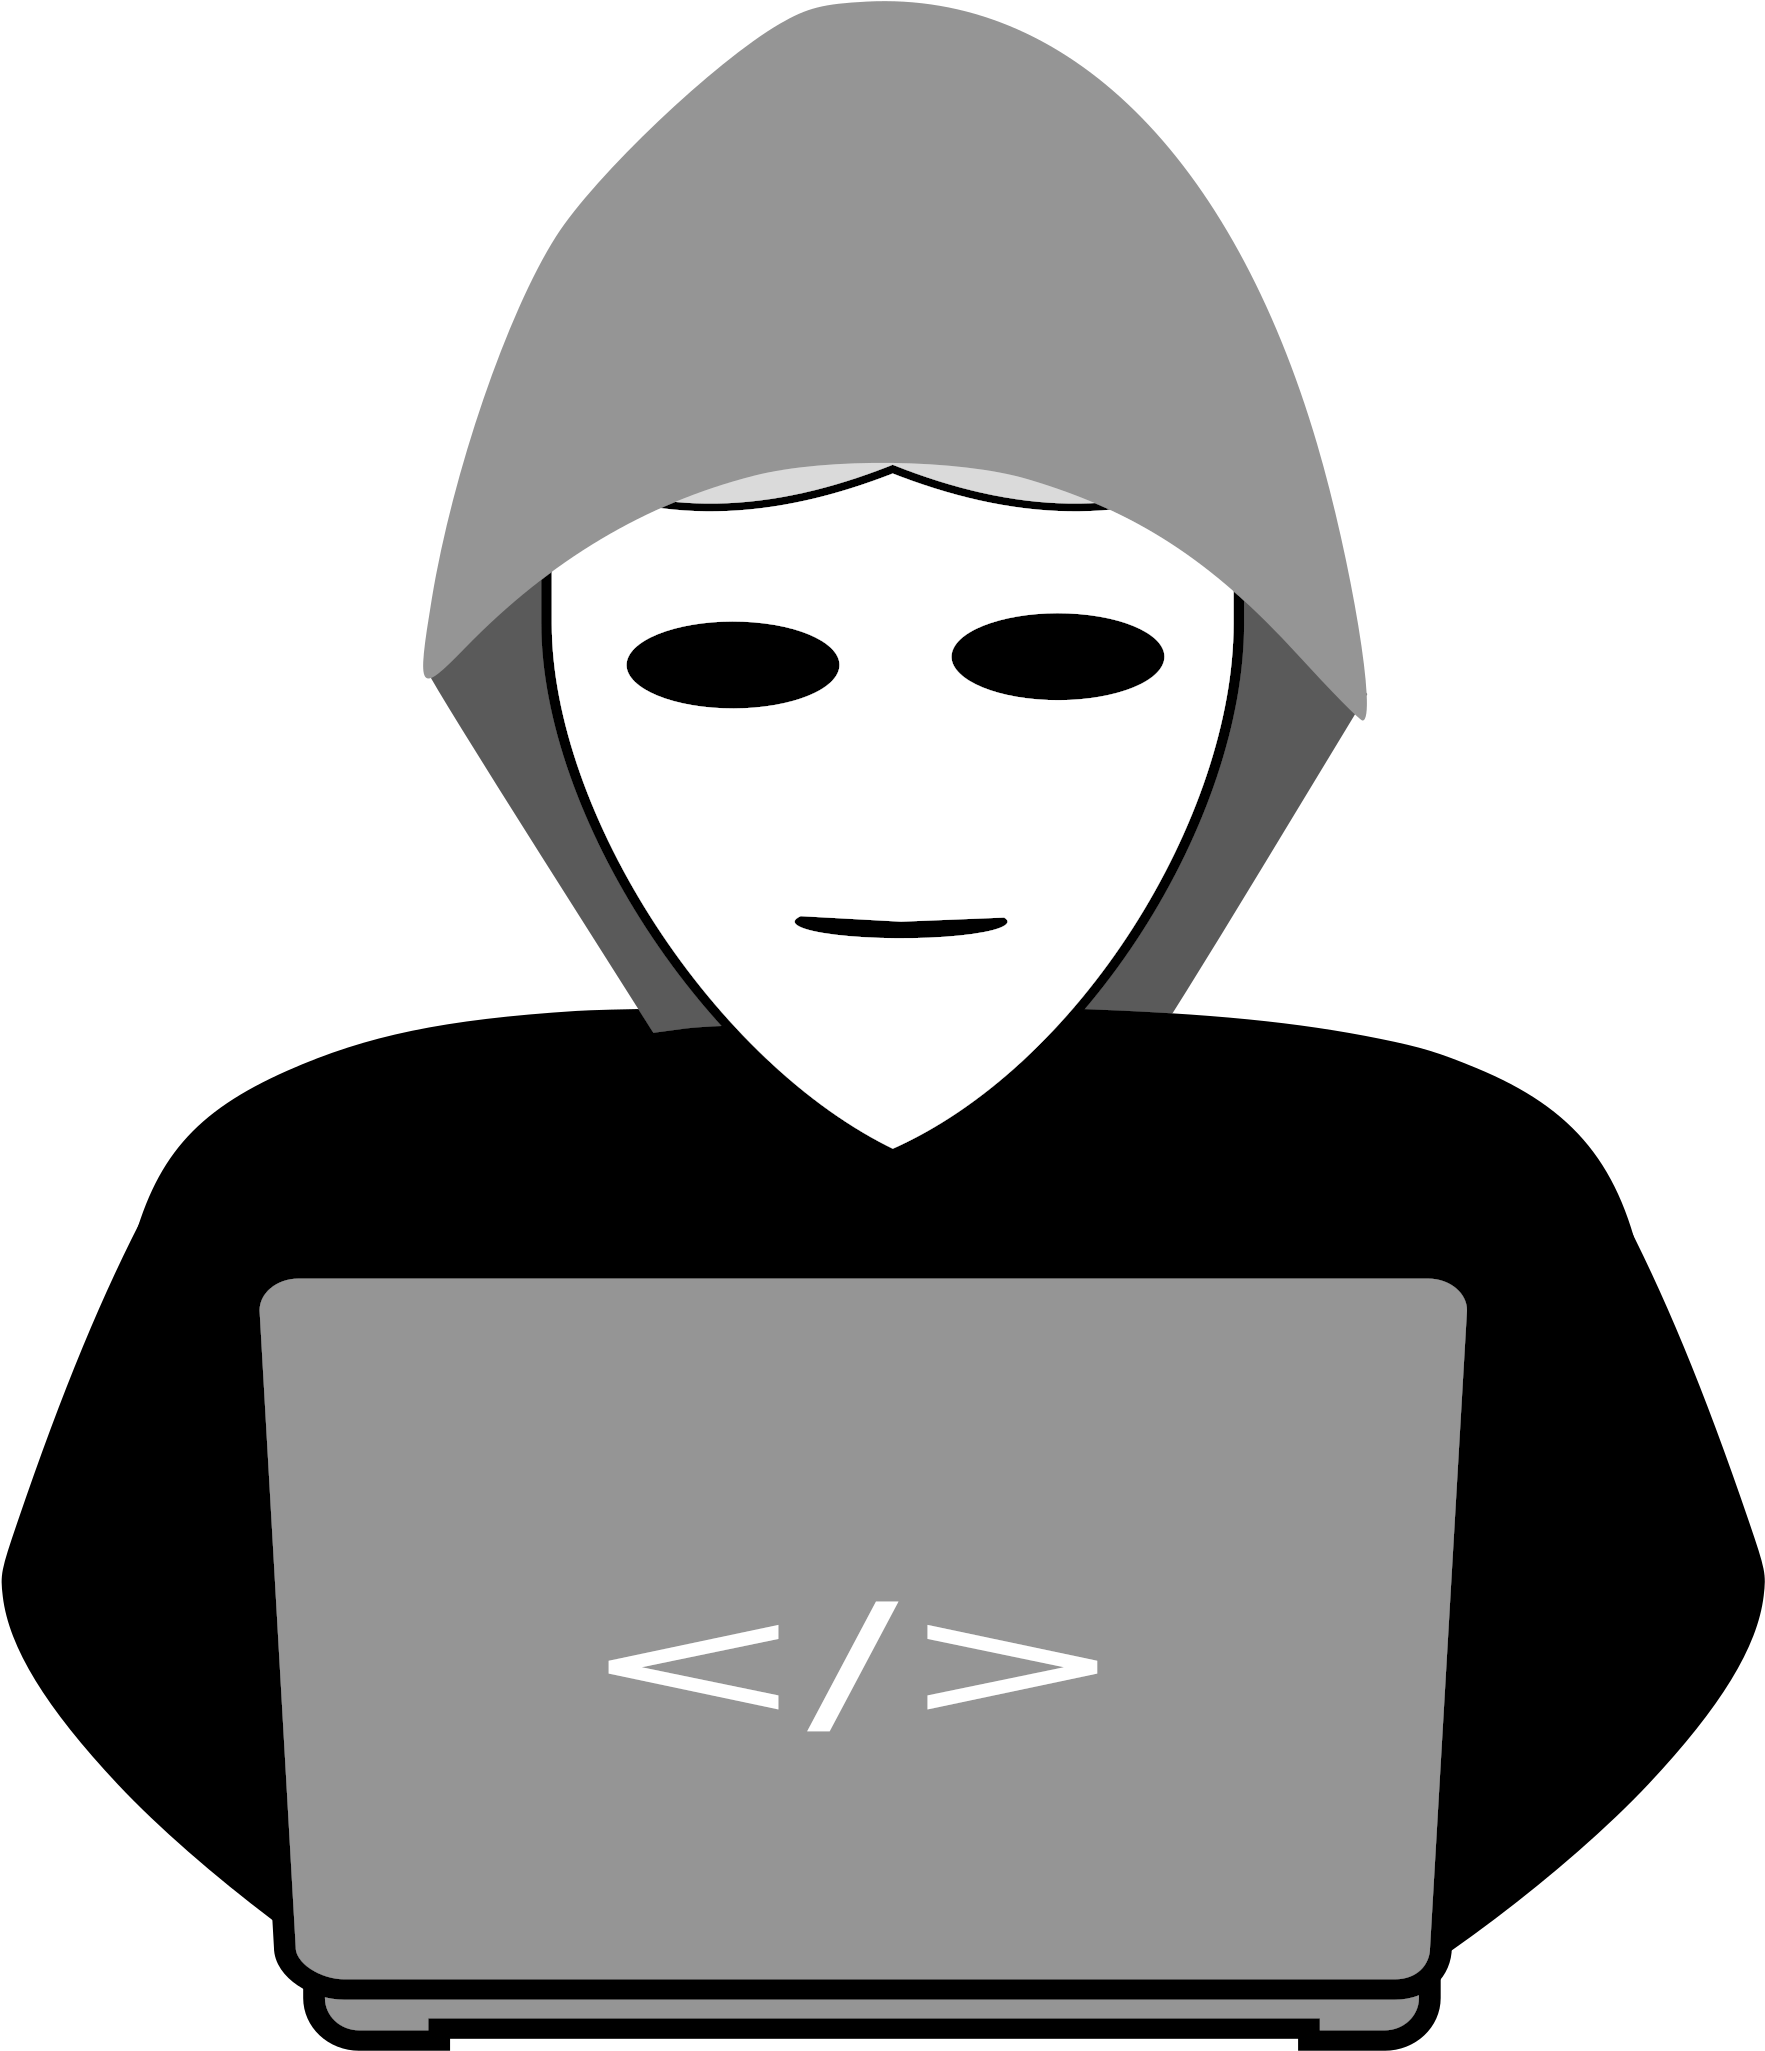 Computer Clipart Character.